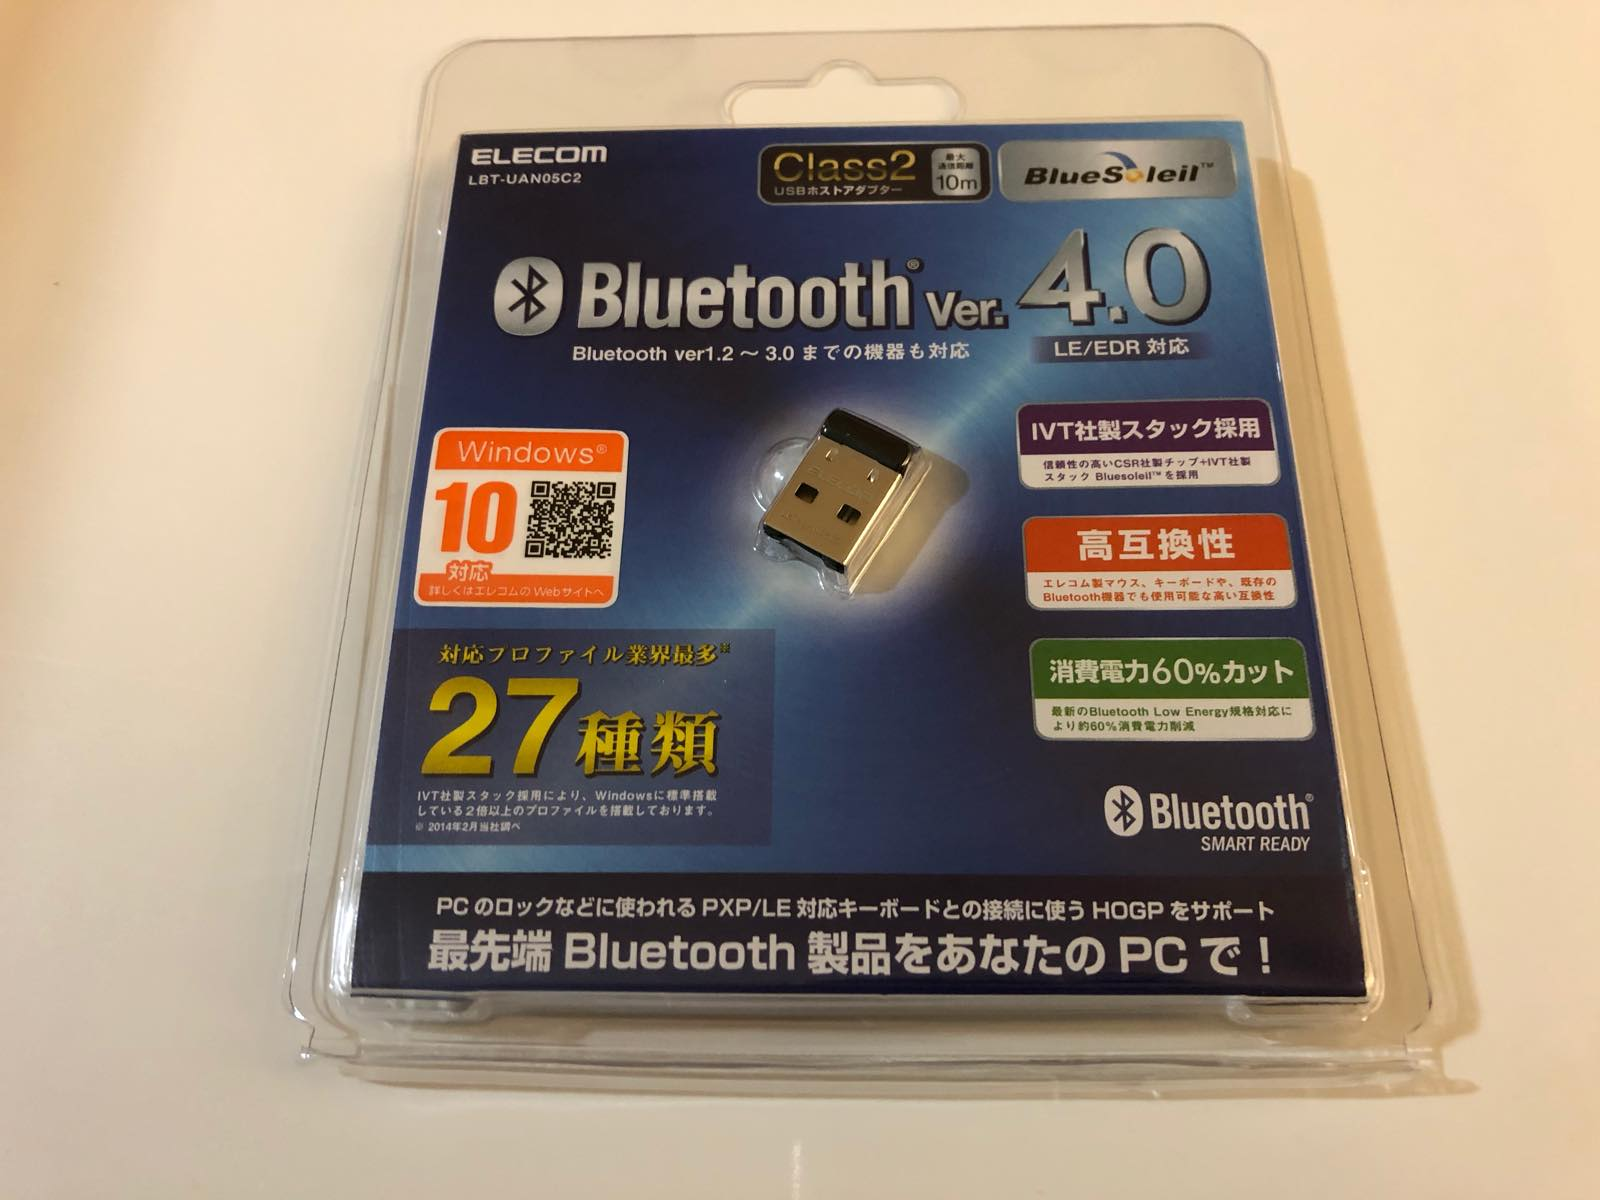 Bluetooth USB アダプタ 01 202028 93236